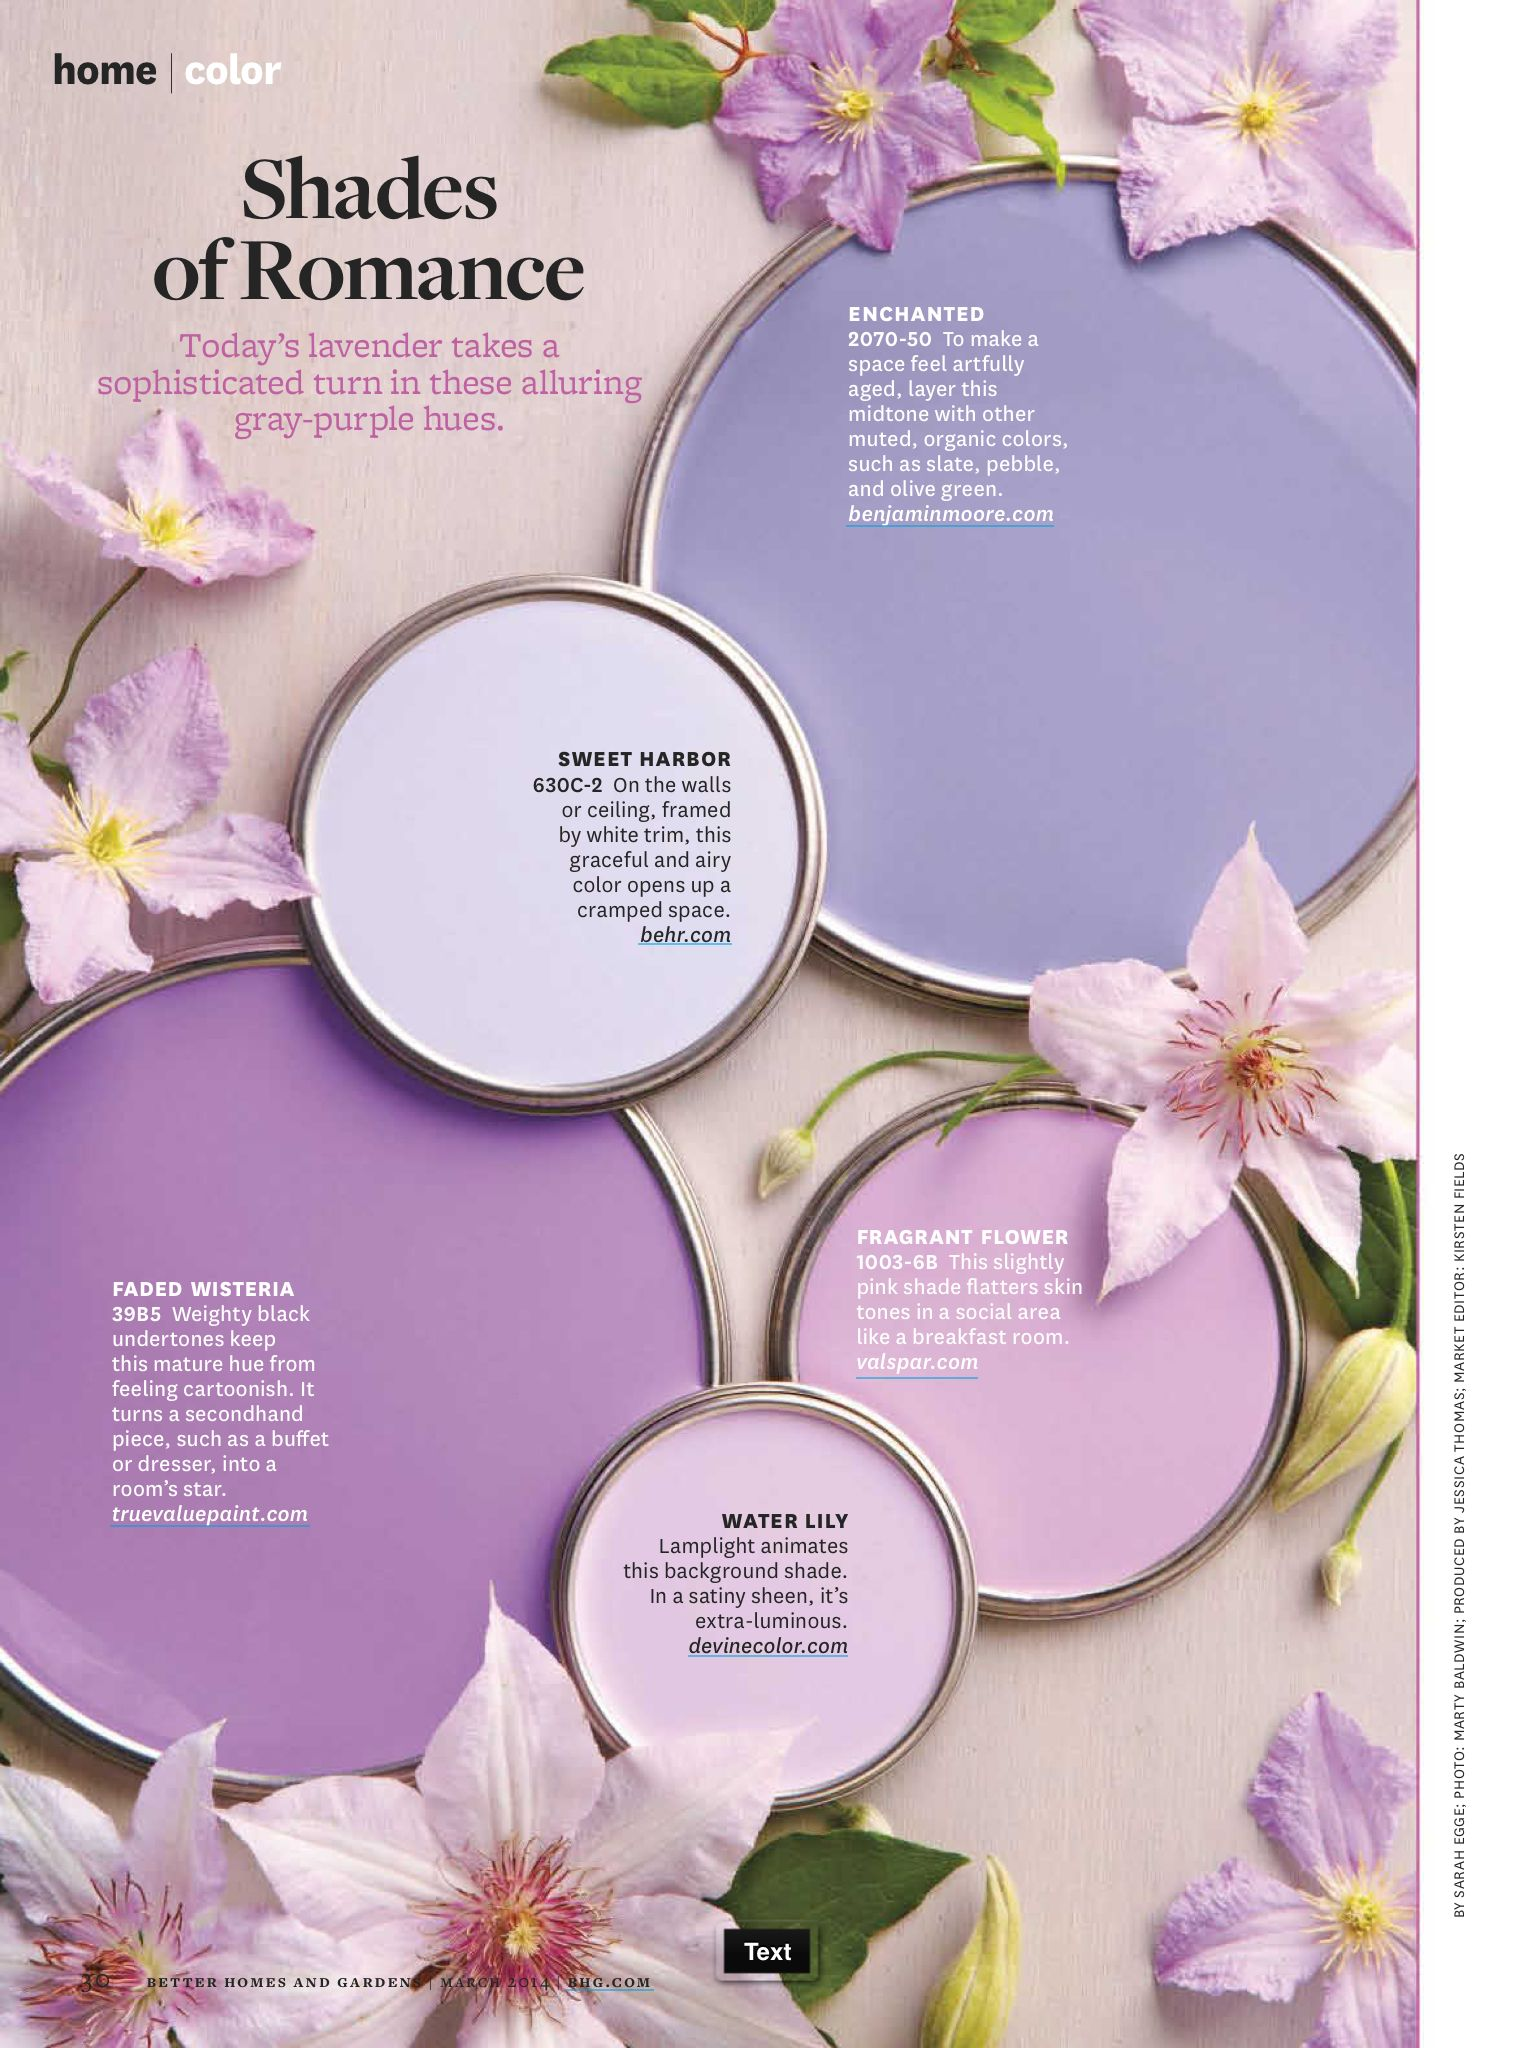 Better Home And Gardens Amethyst Home Painting Pinterest Home And Garden Better Homes And